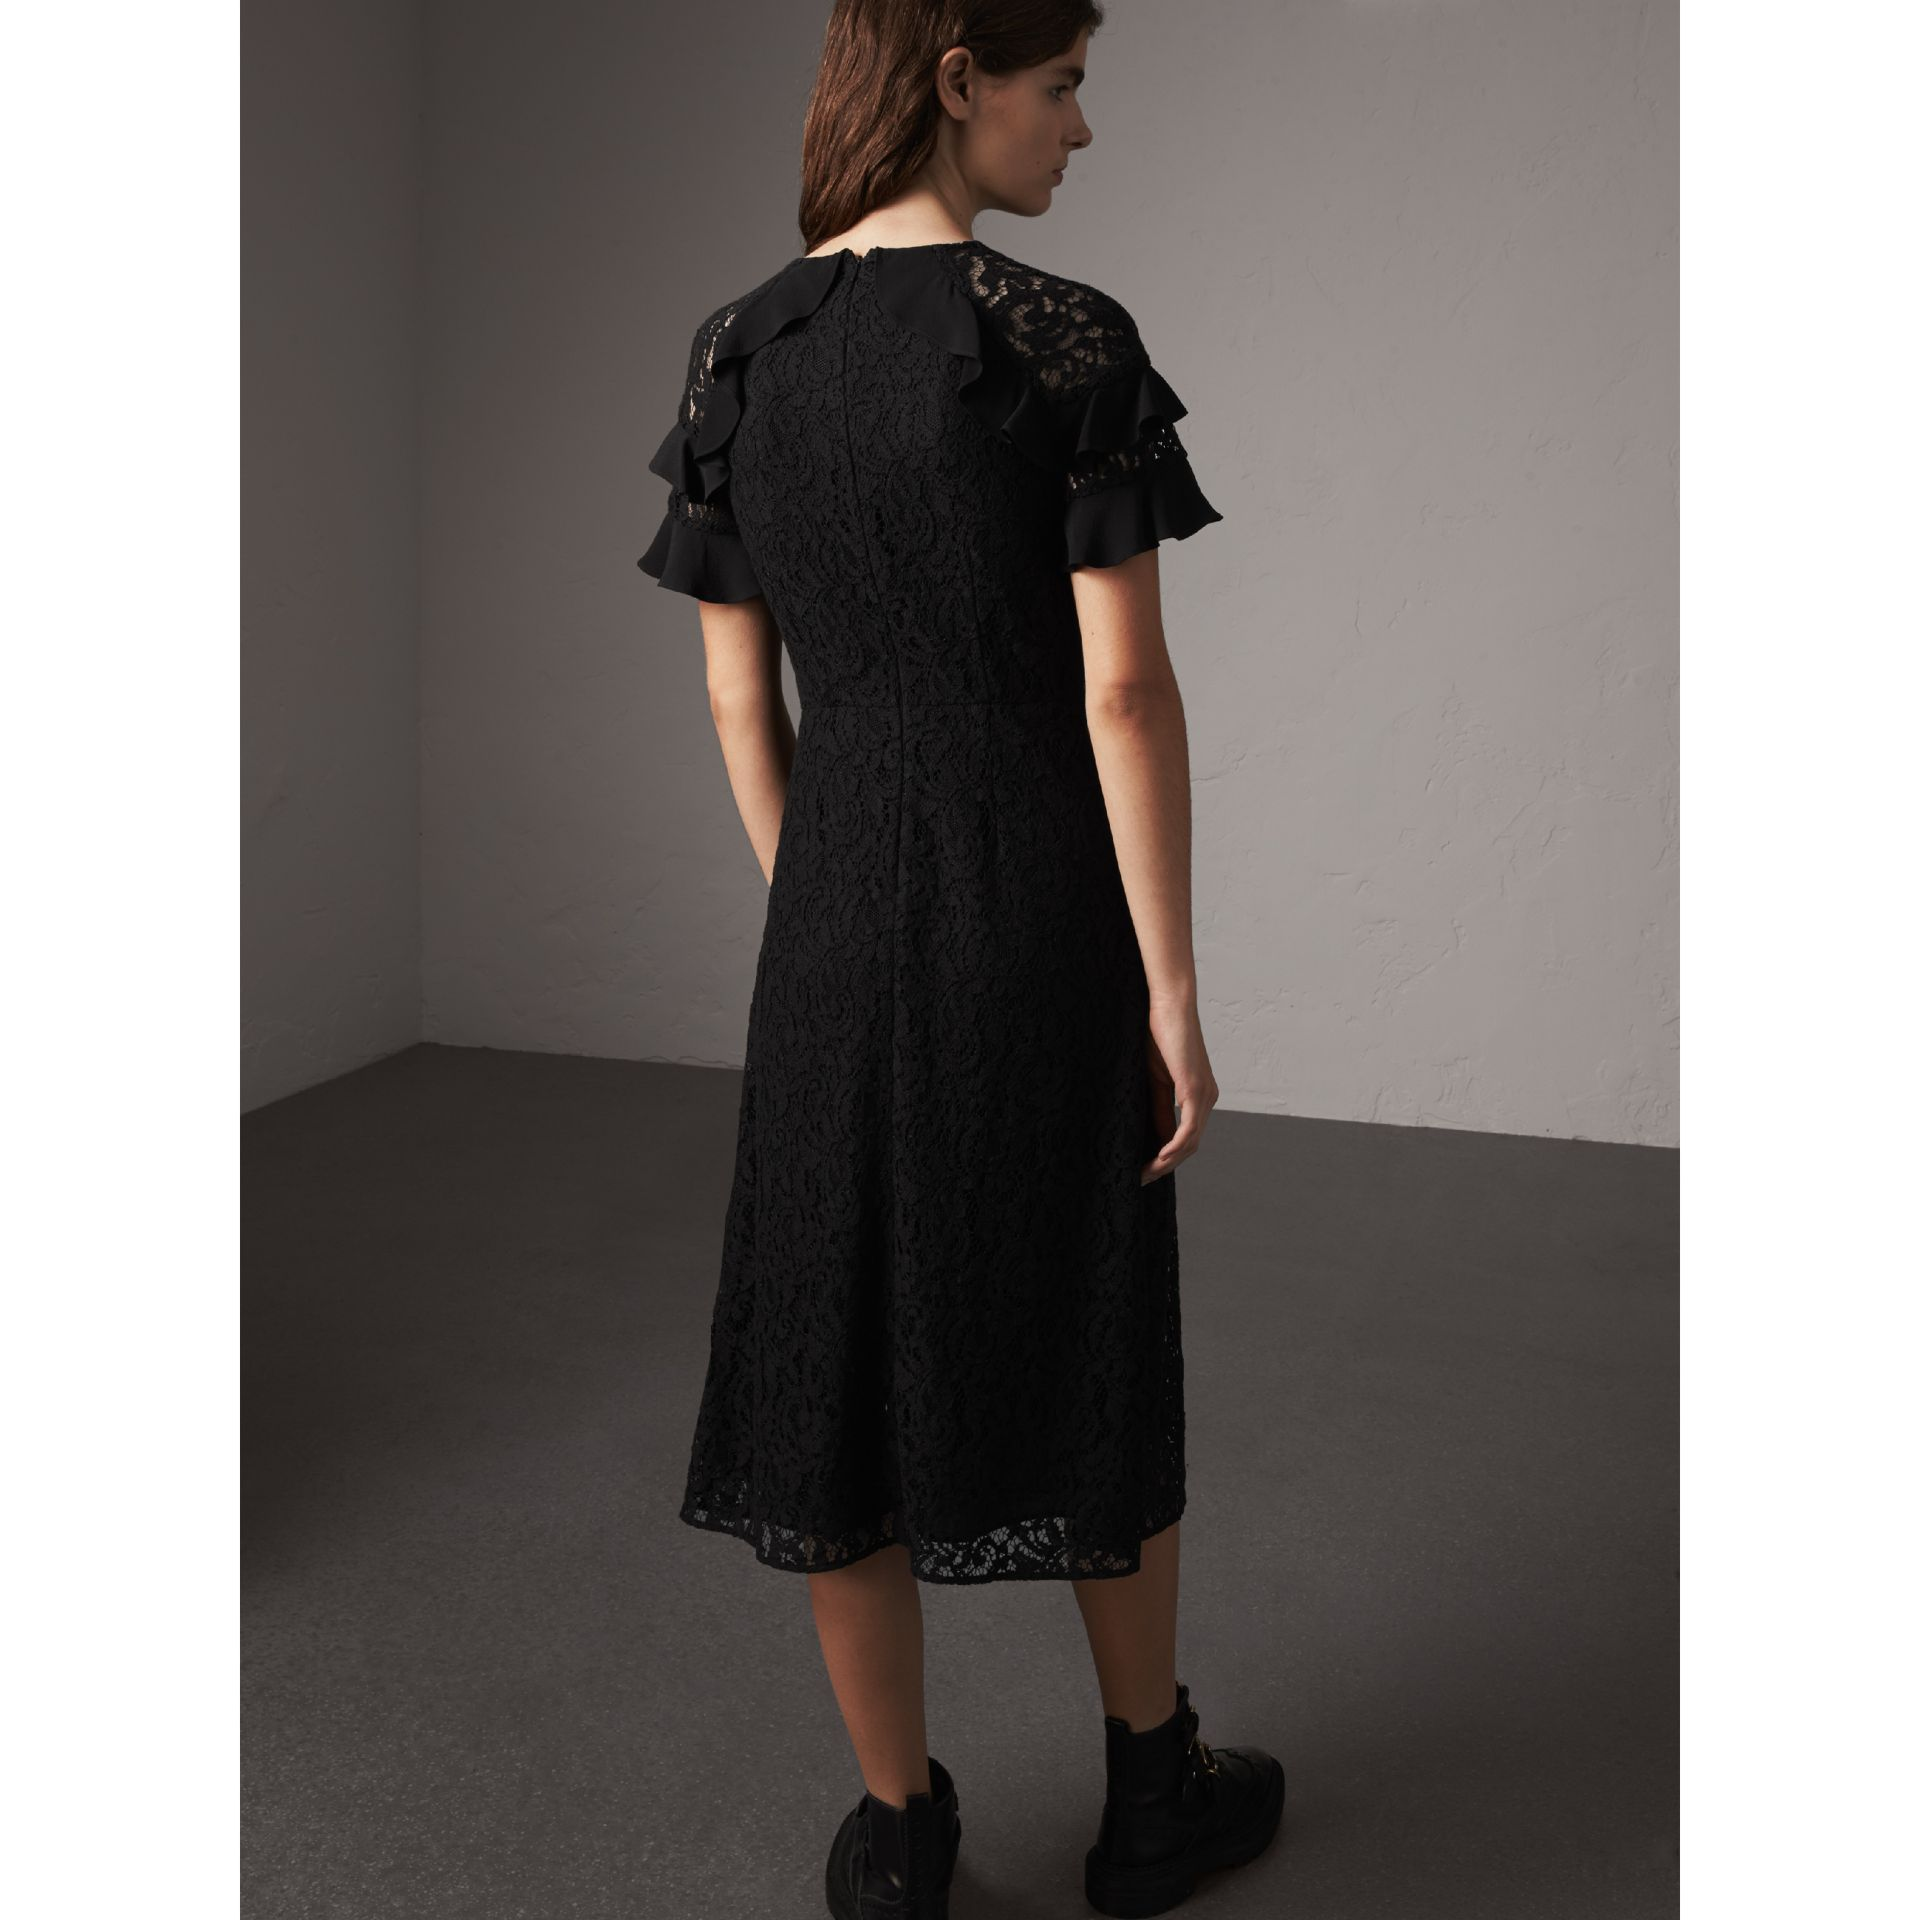 Ruffle Detail Floral Lace Dress in Black - Women | Burberry - gallery image 2